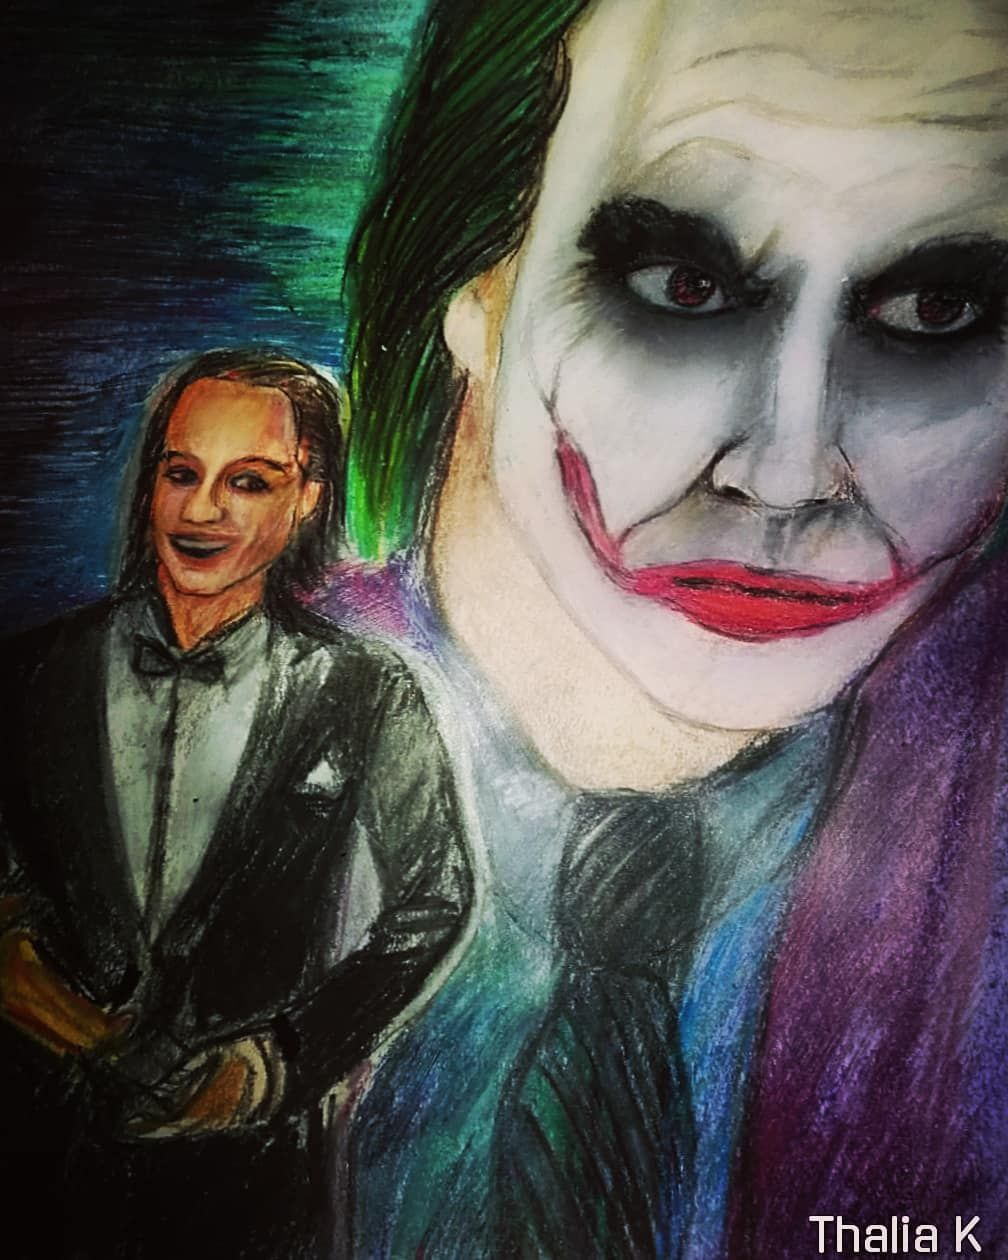 Gotham Halloween Oscars 2020 colourpencils #oscars #heathledger #joker #darkknight #gotham